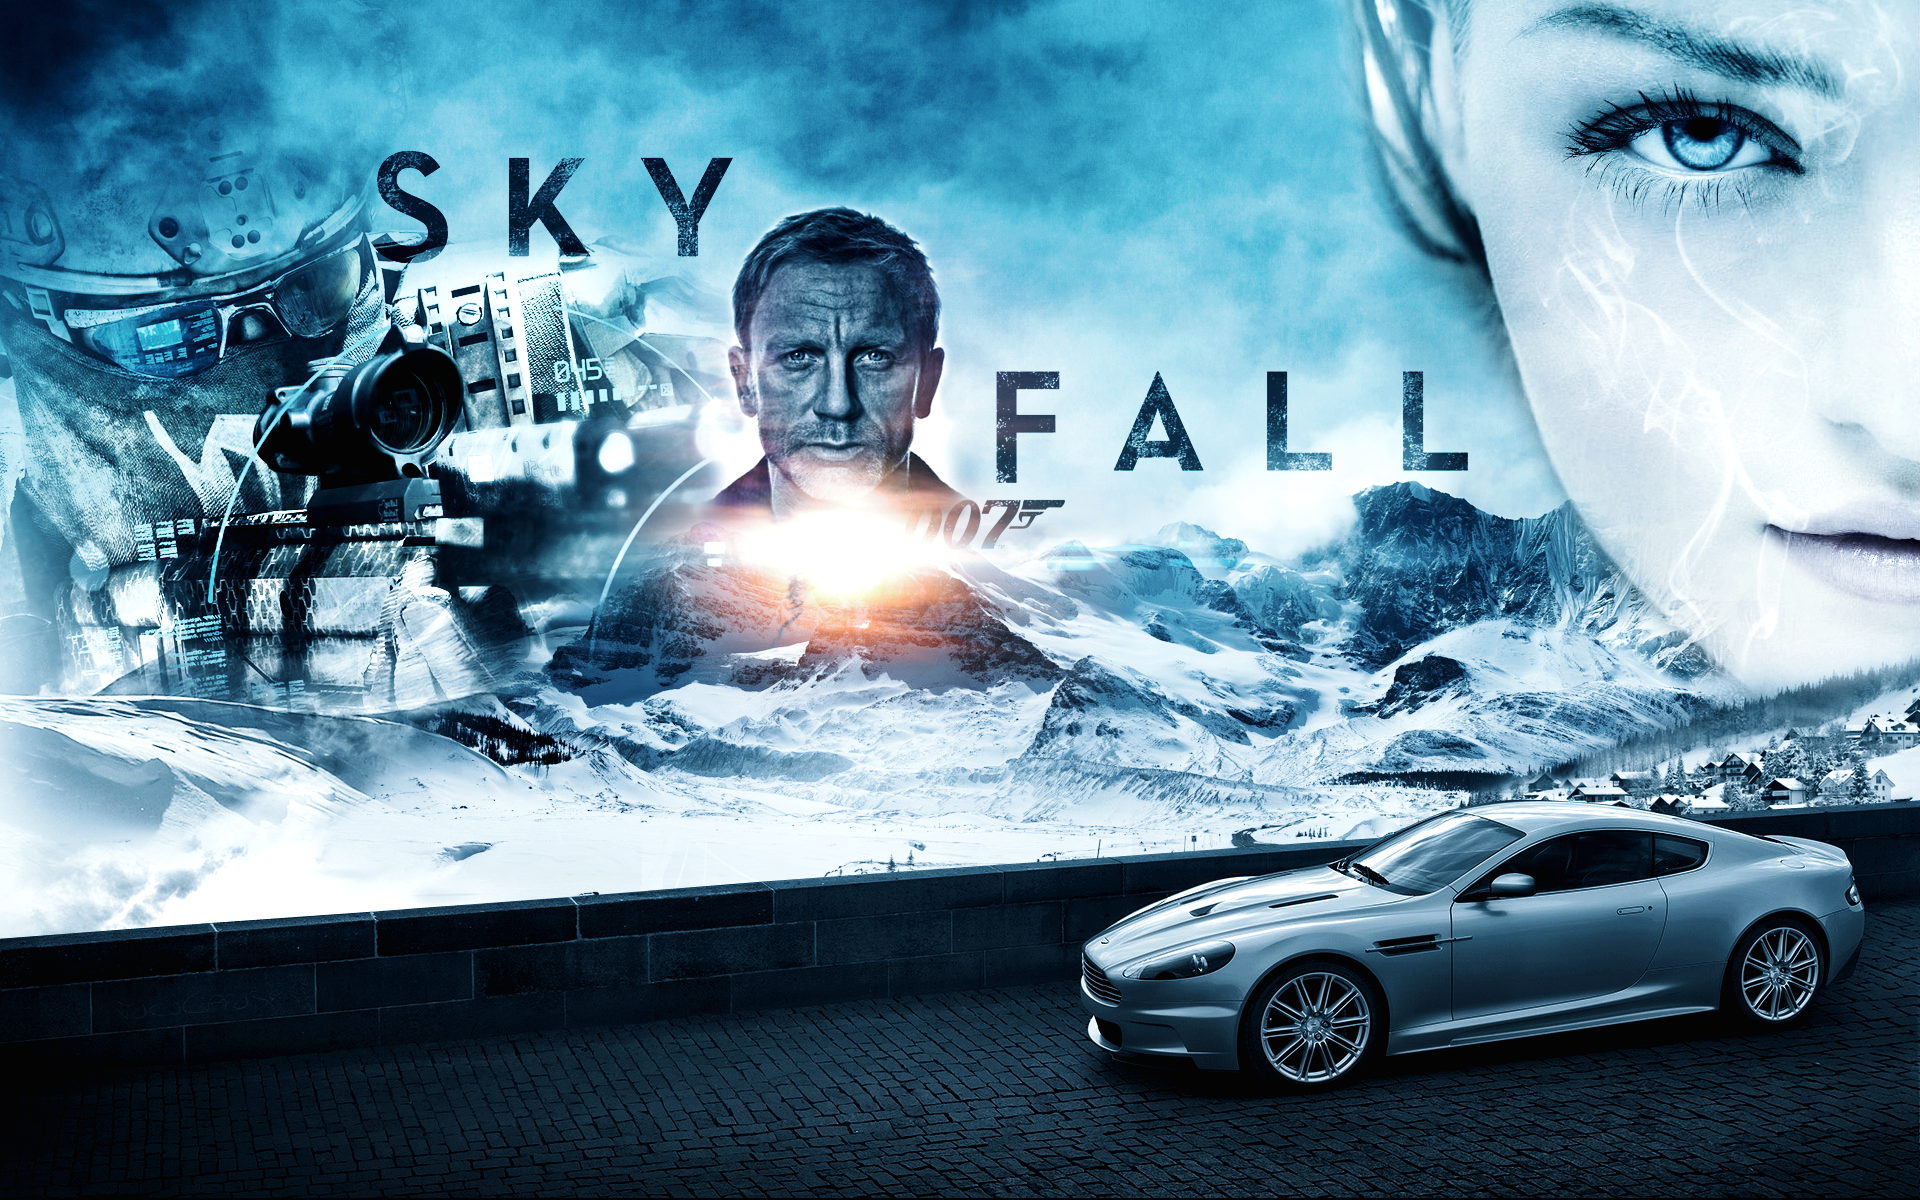 James Bond Skyfall 007 Wallpapers [2012] 1920x1200